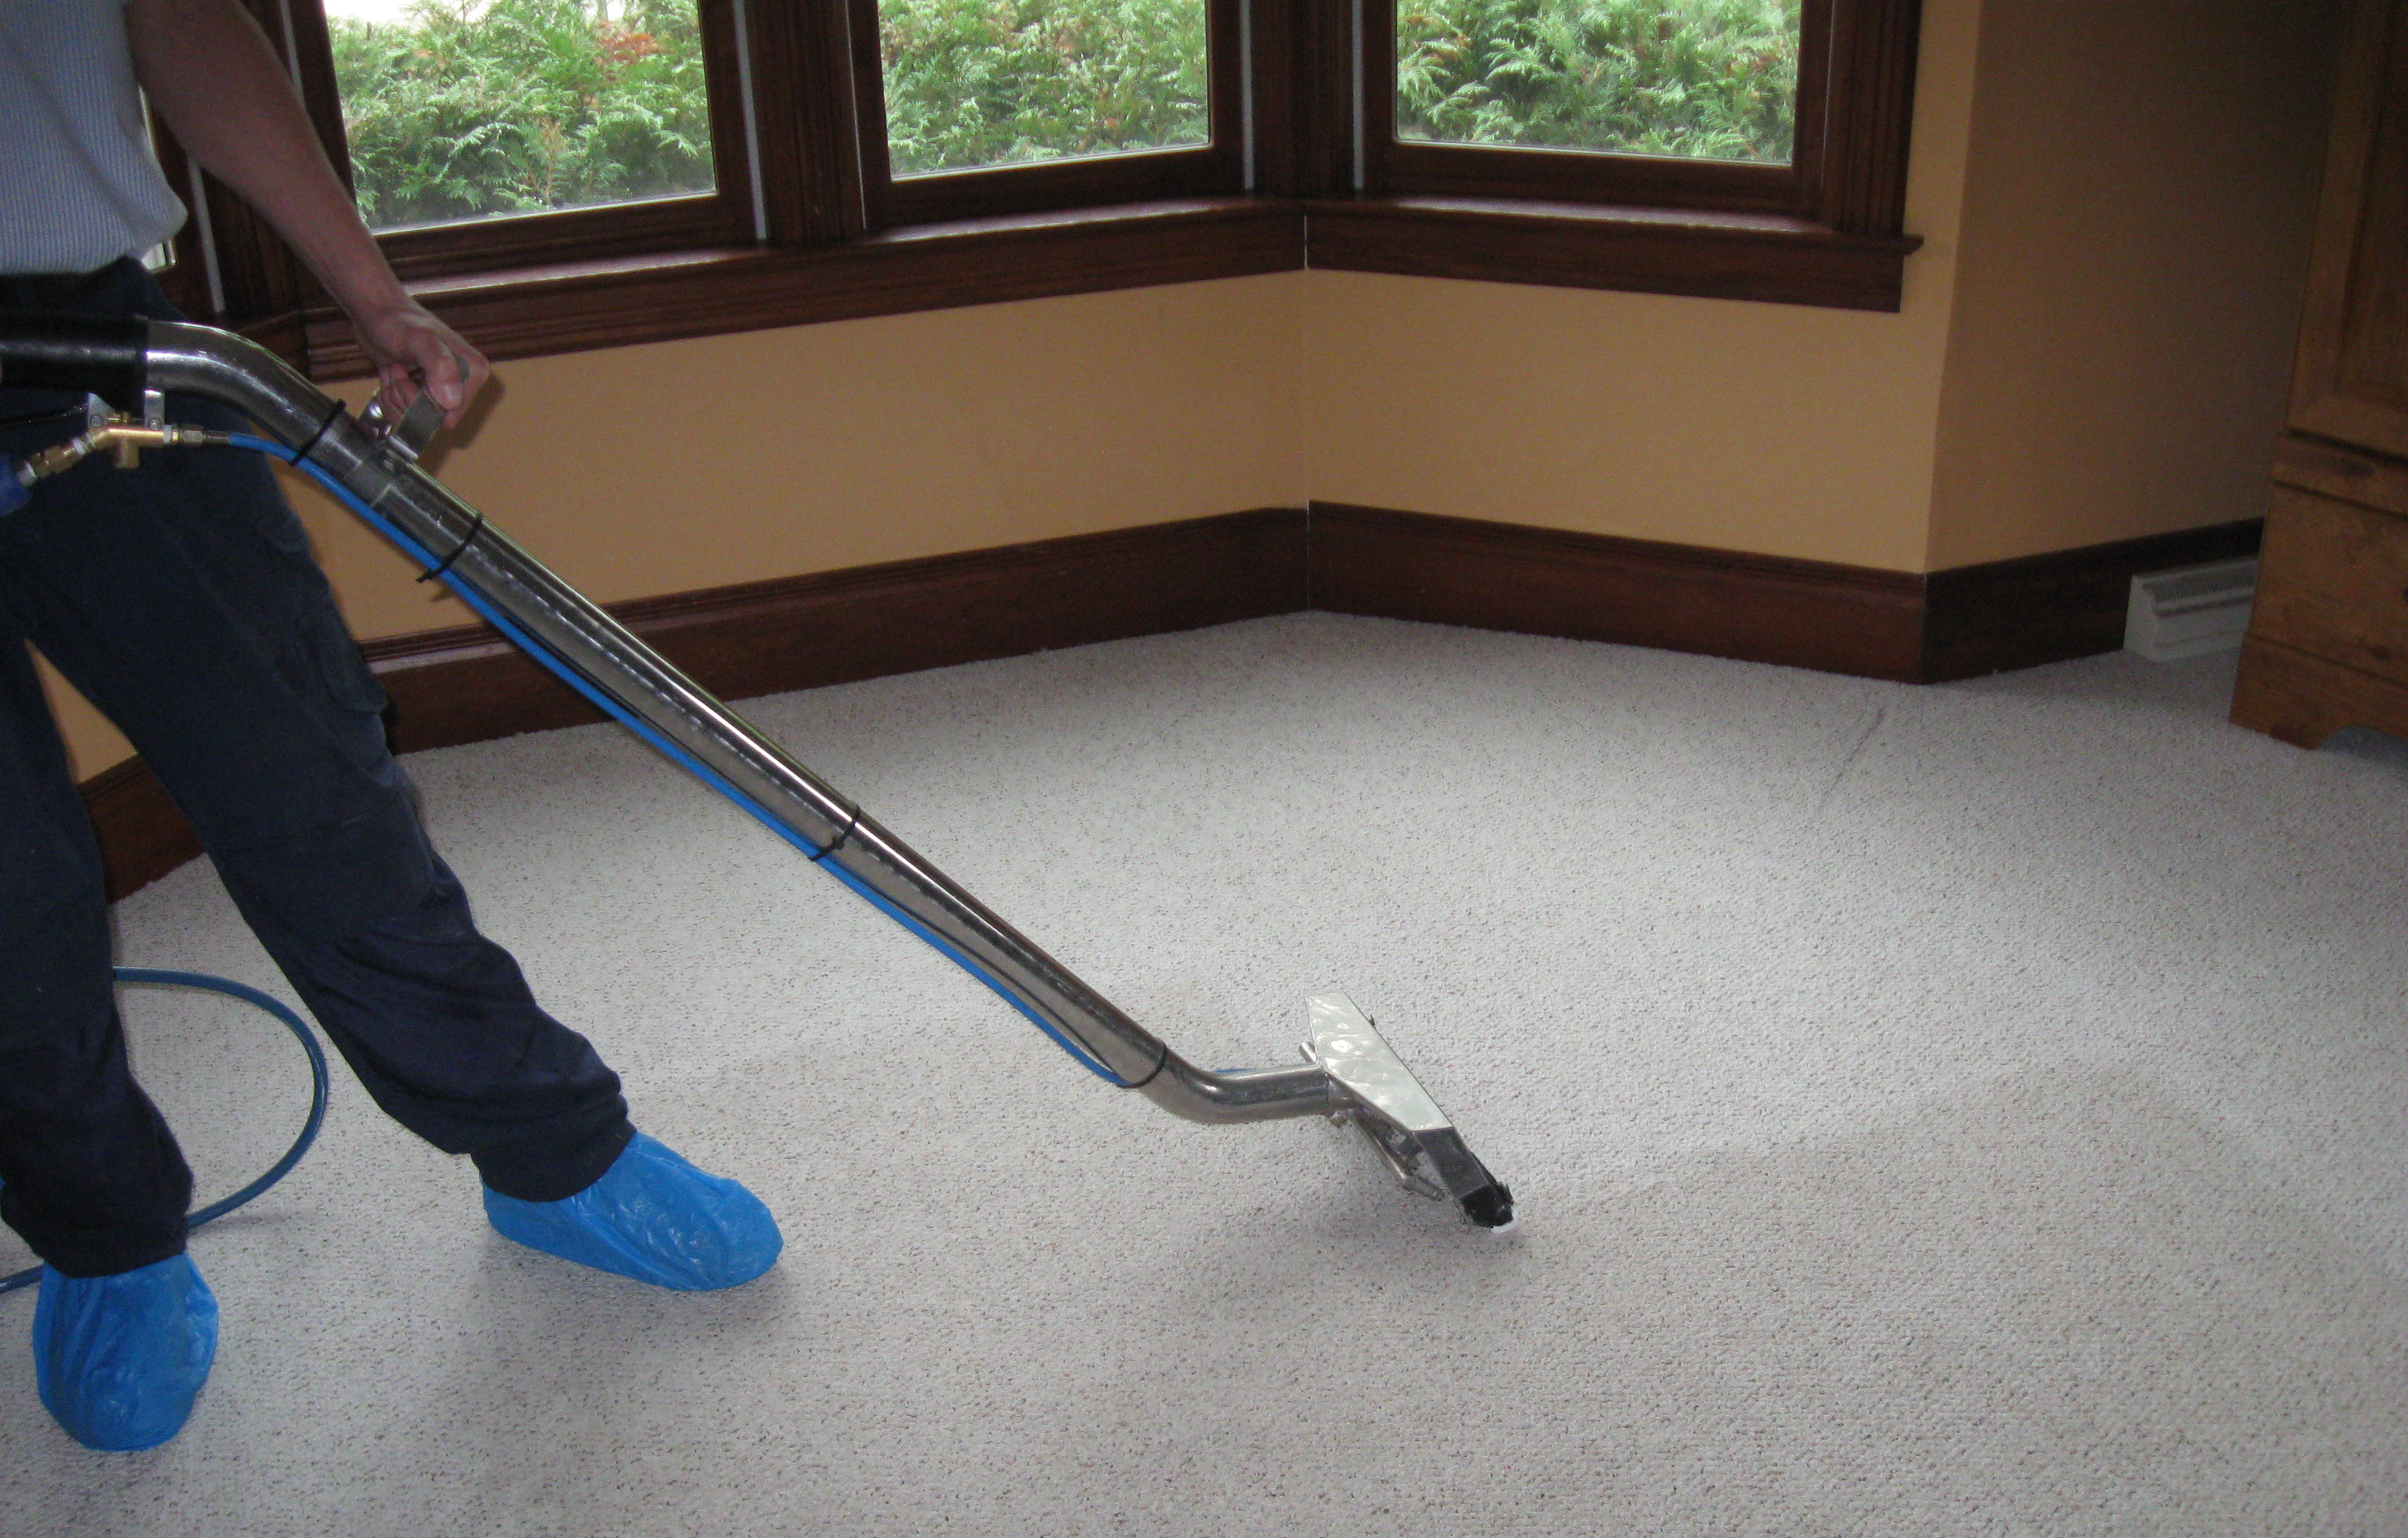 The Office Cleaners - Commercial Carpet Cleaning - Cleaning Image